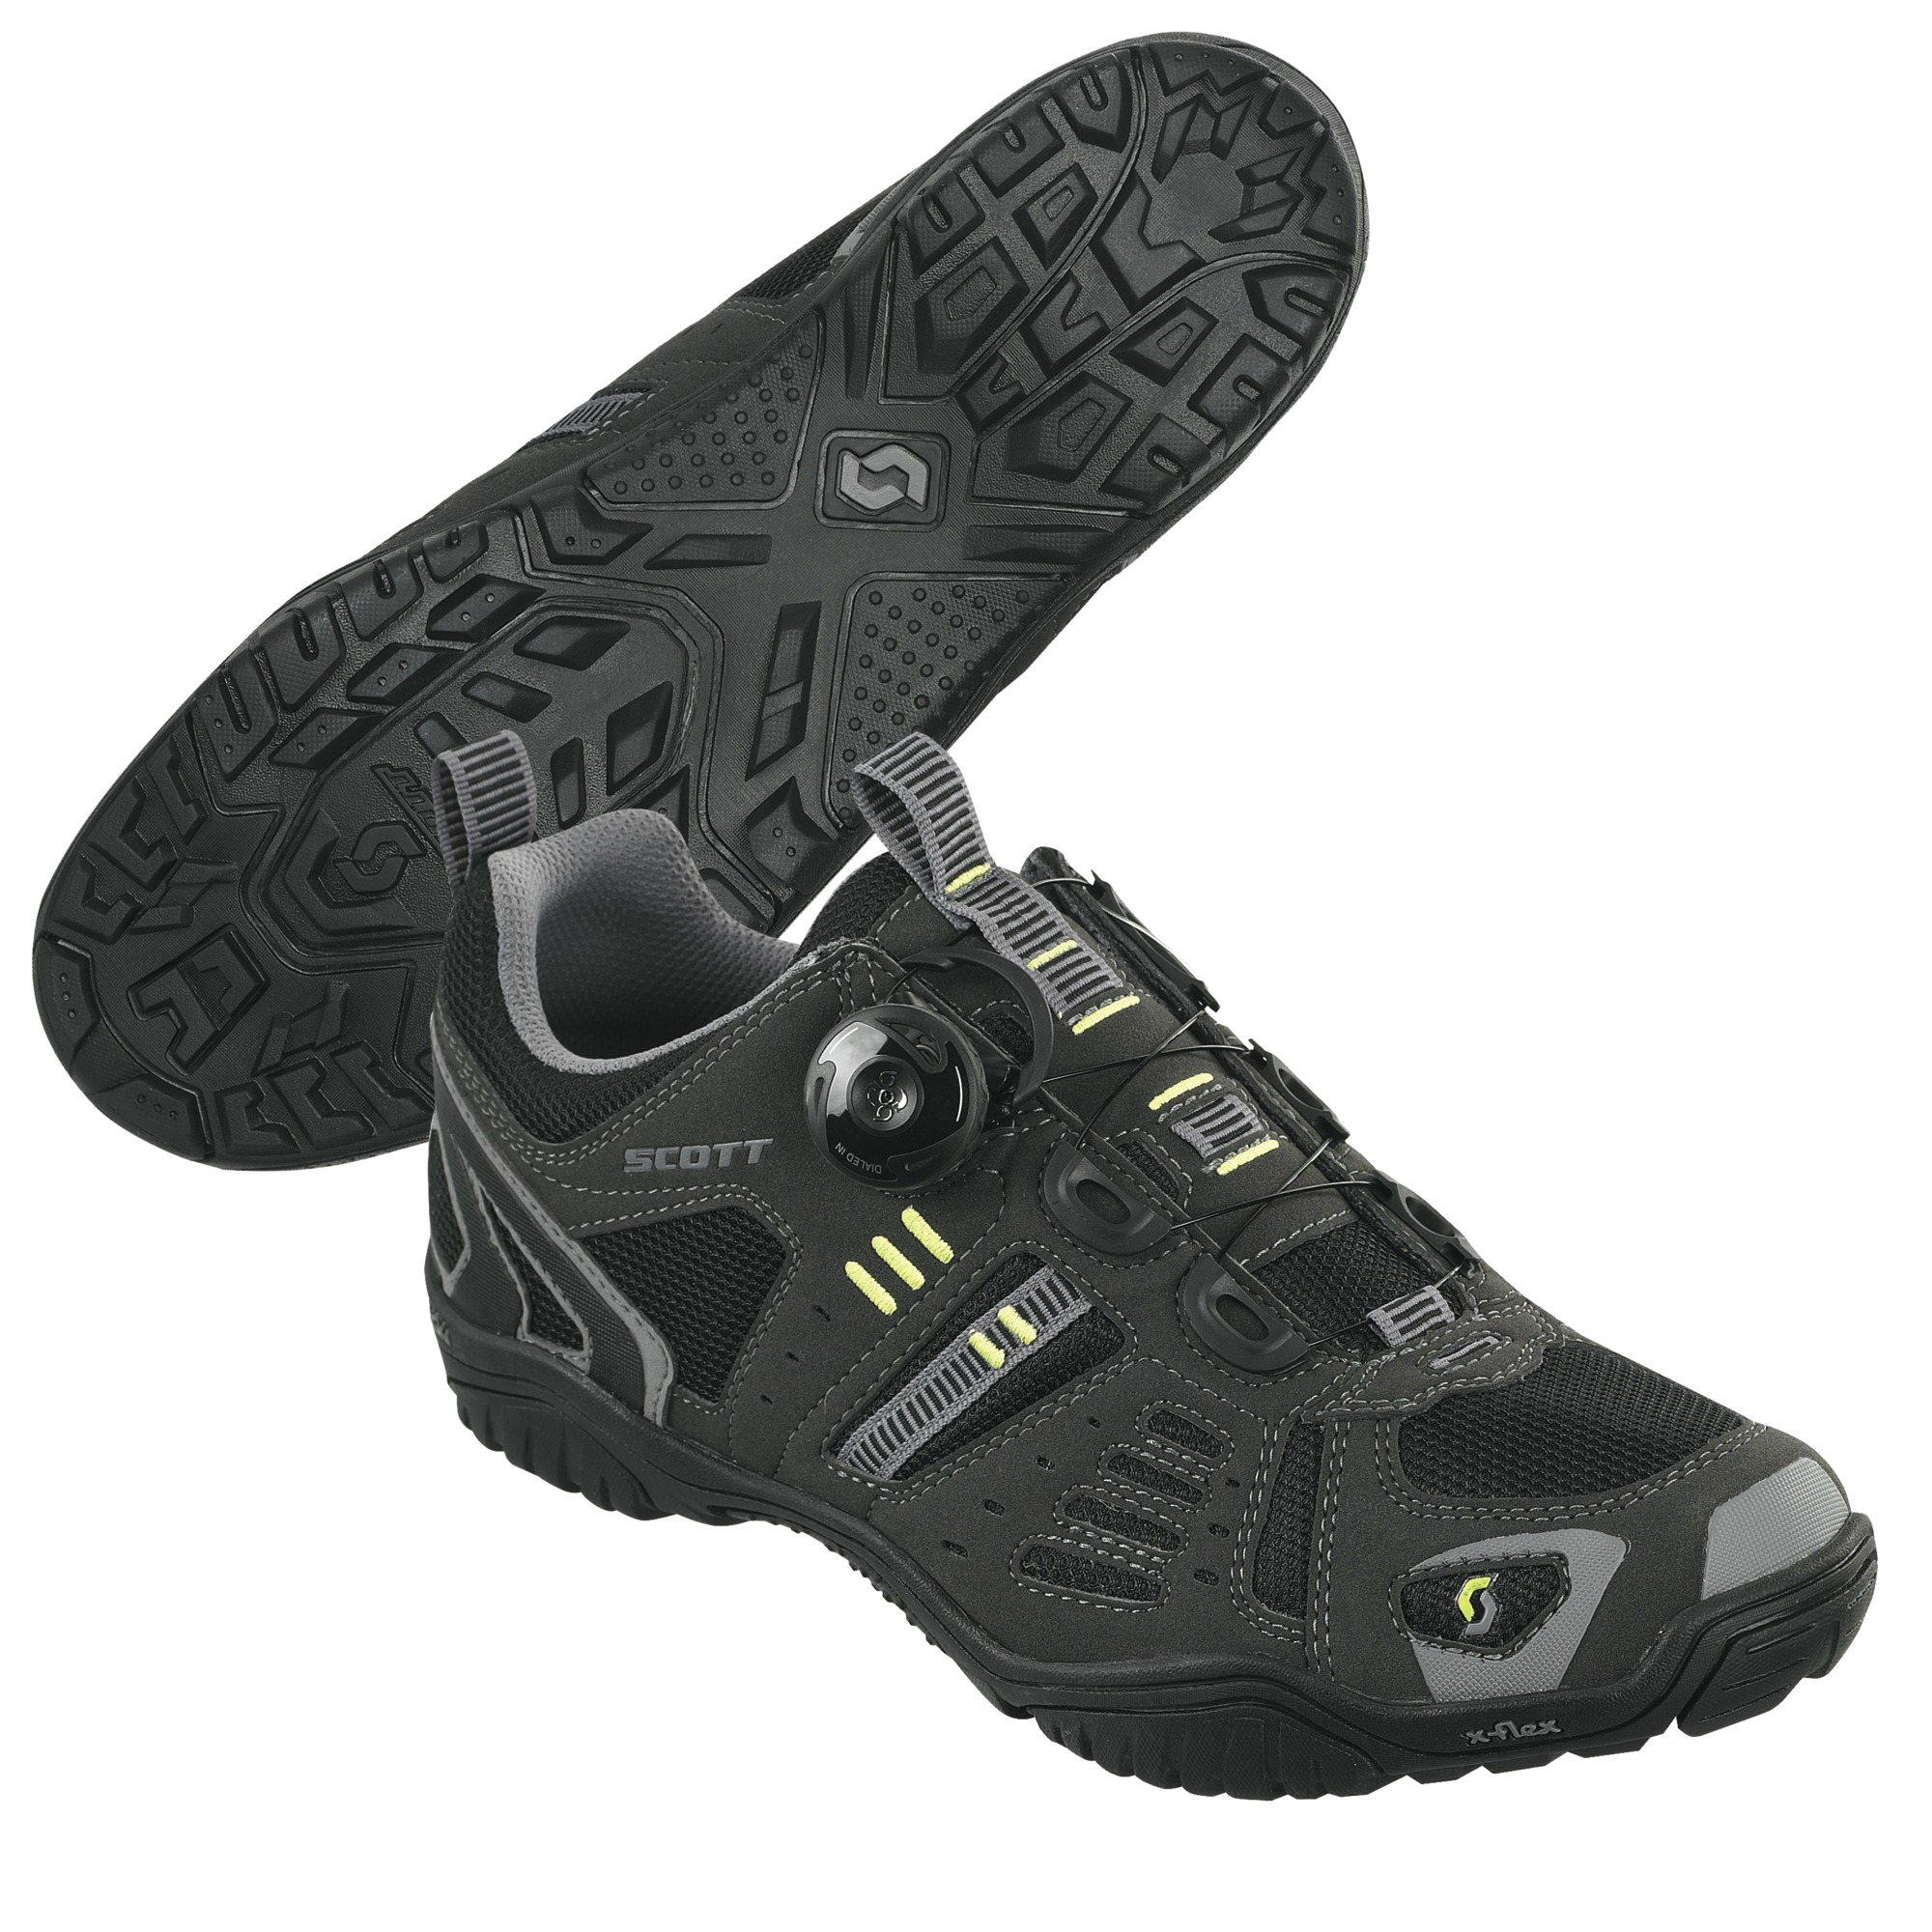 SCOTT TRAIL BOA black 41